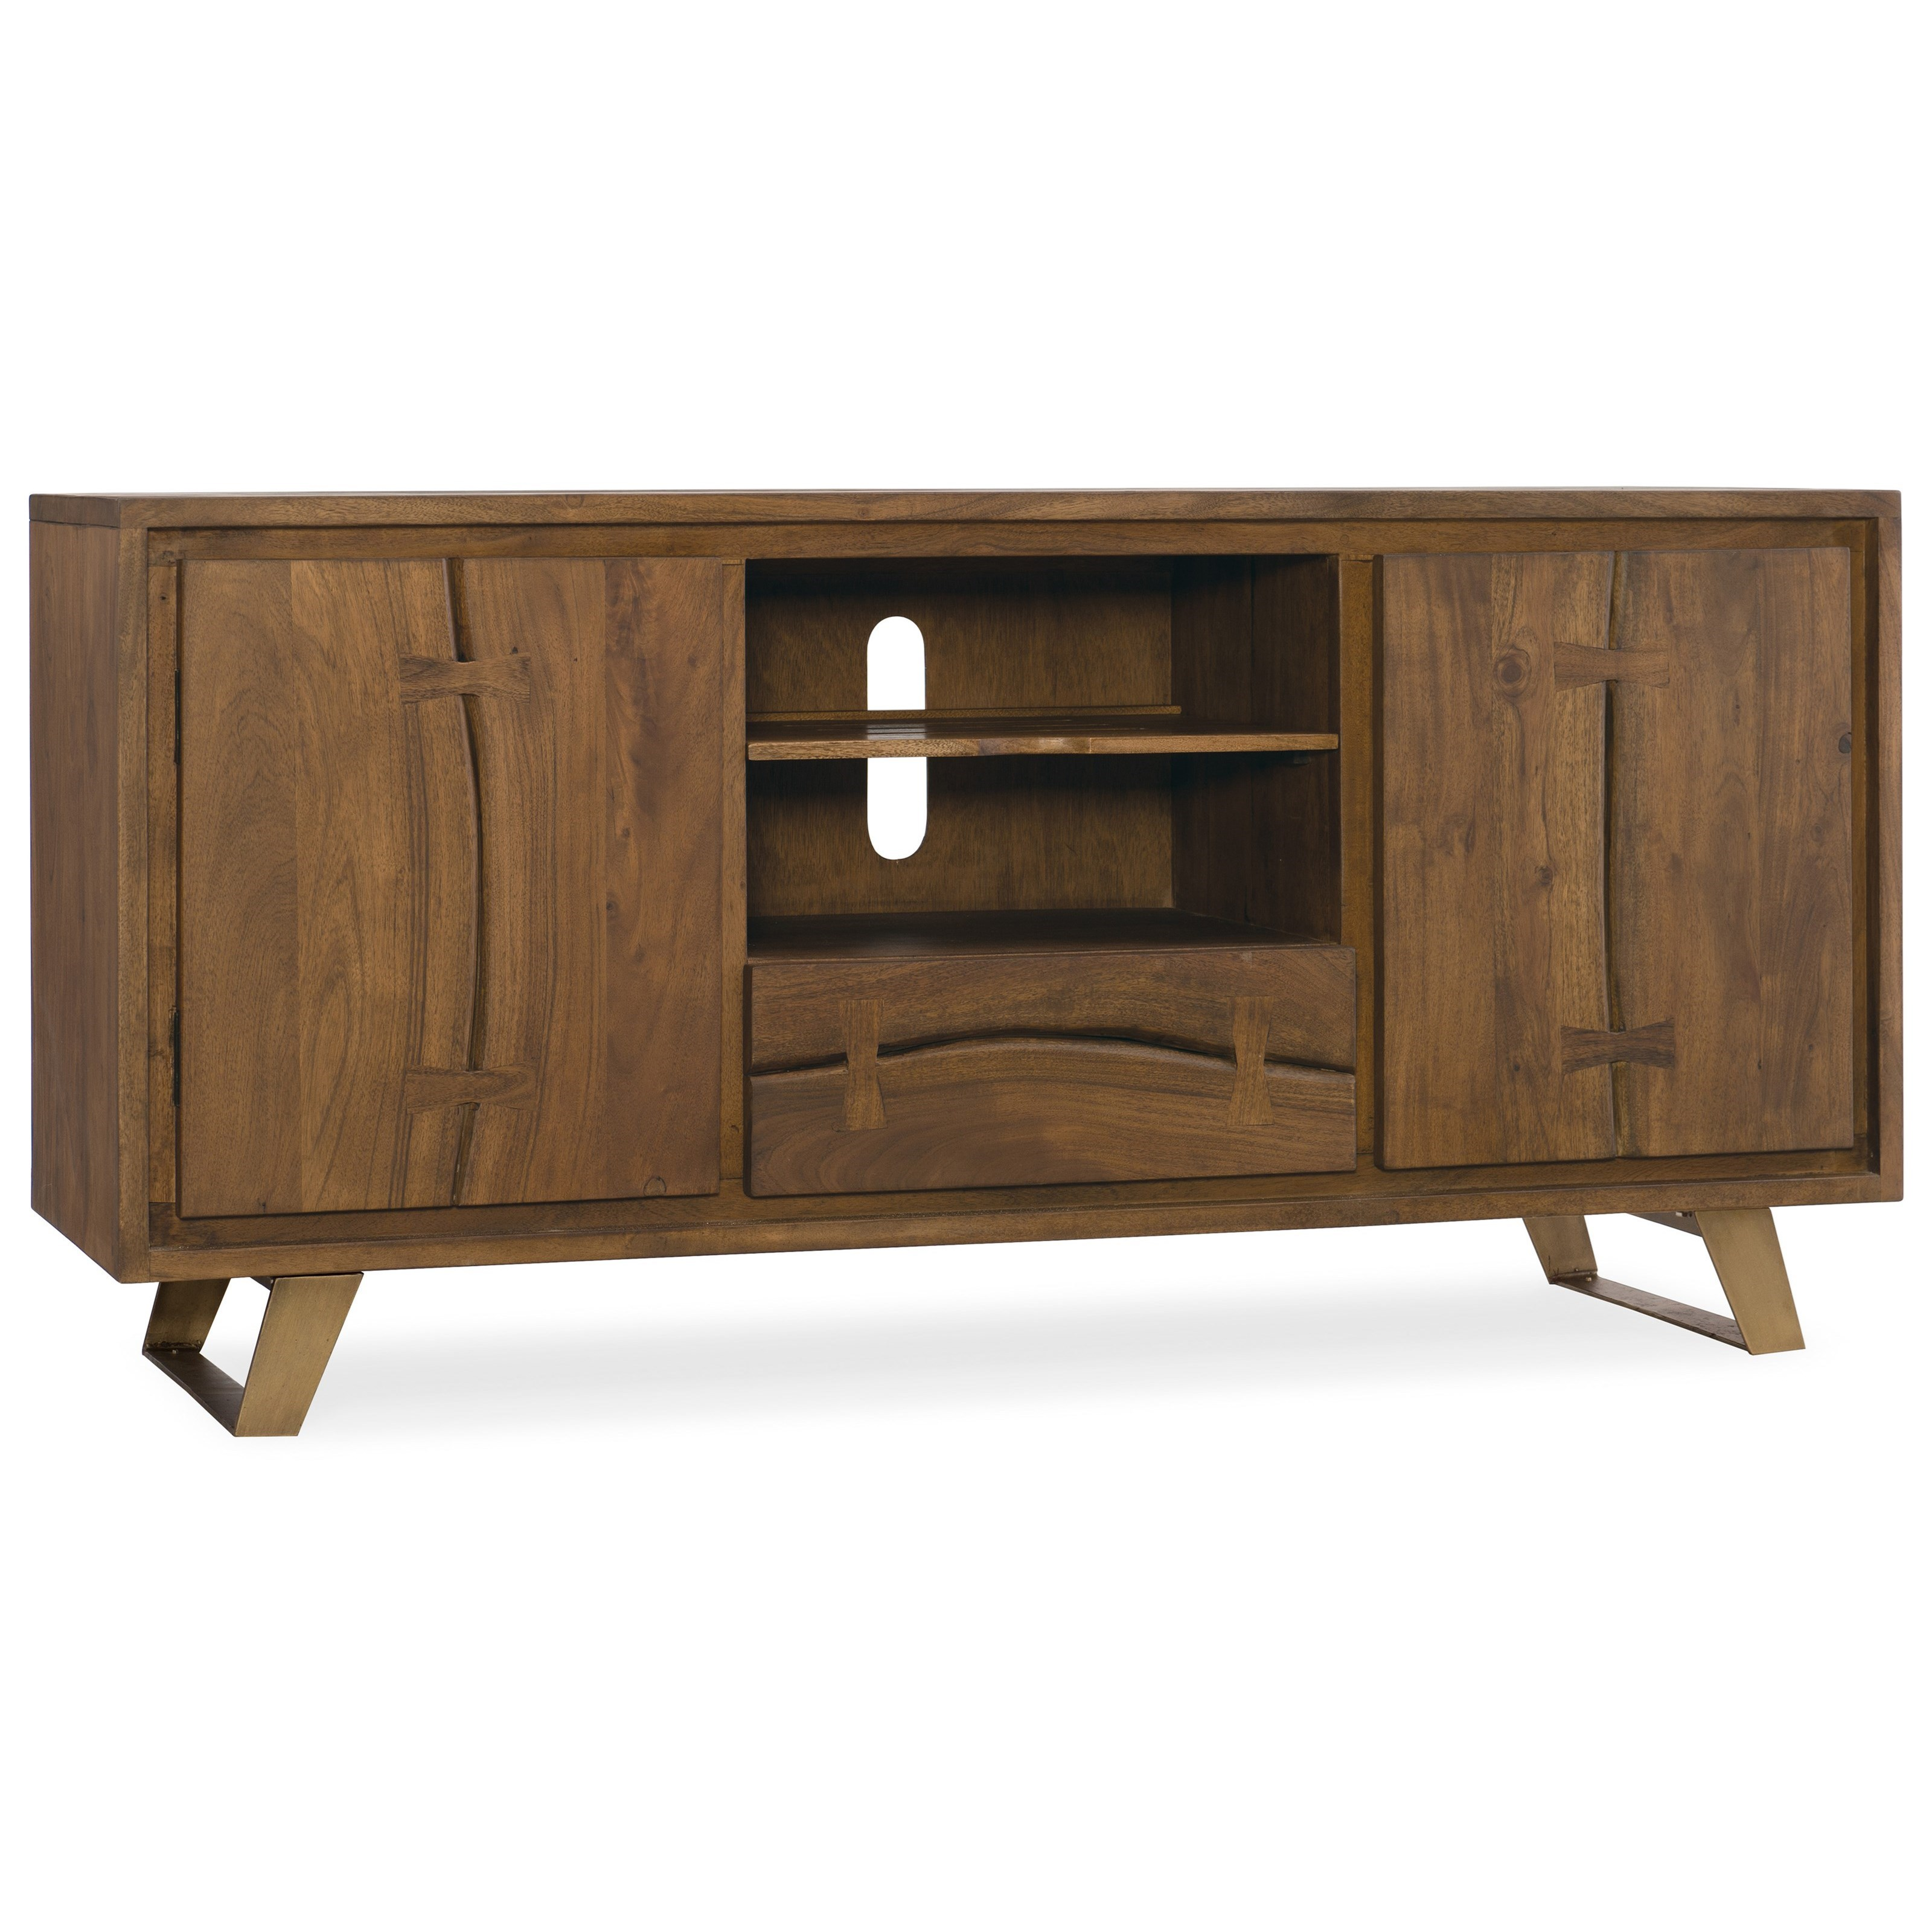 Hooker Furniture Transcend Entertainment Console - Item Number: 7000-55464